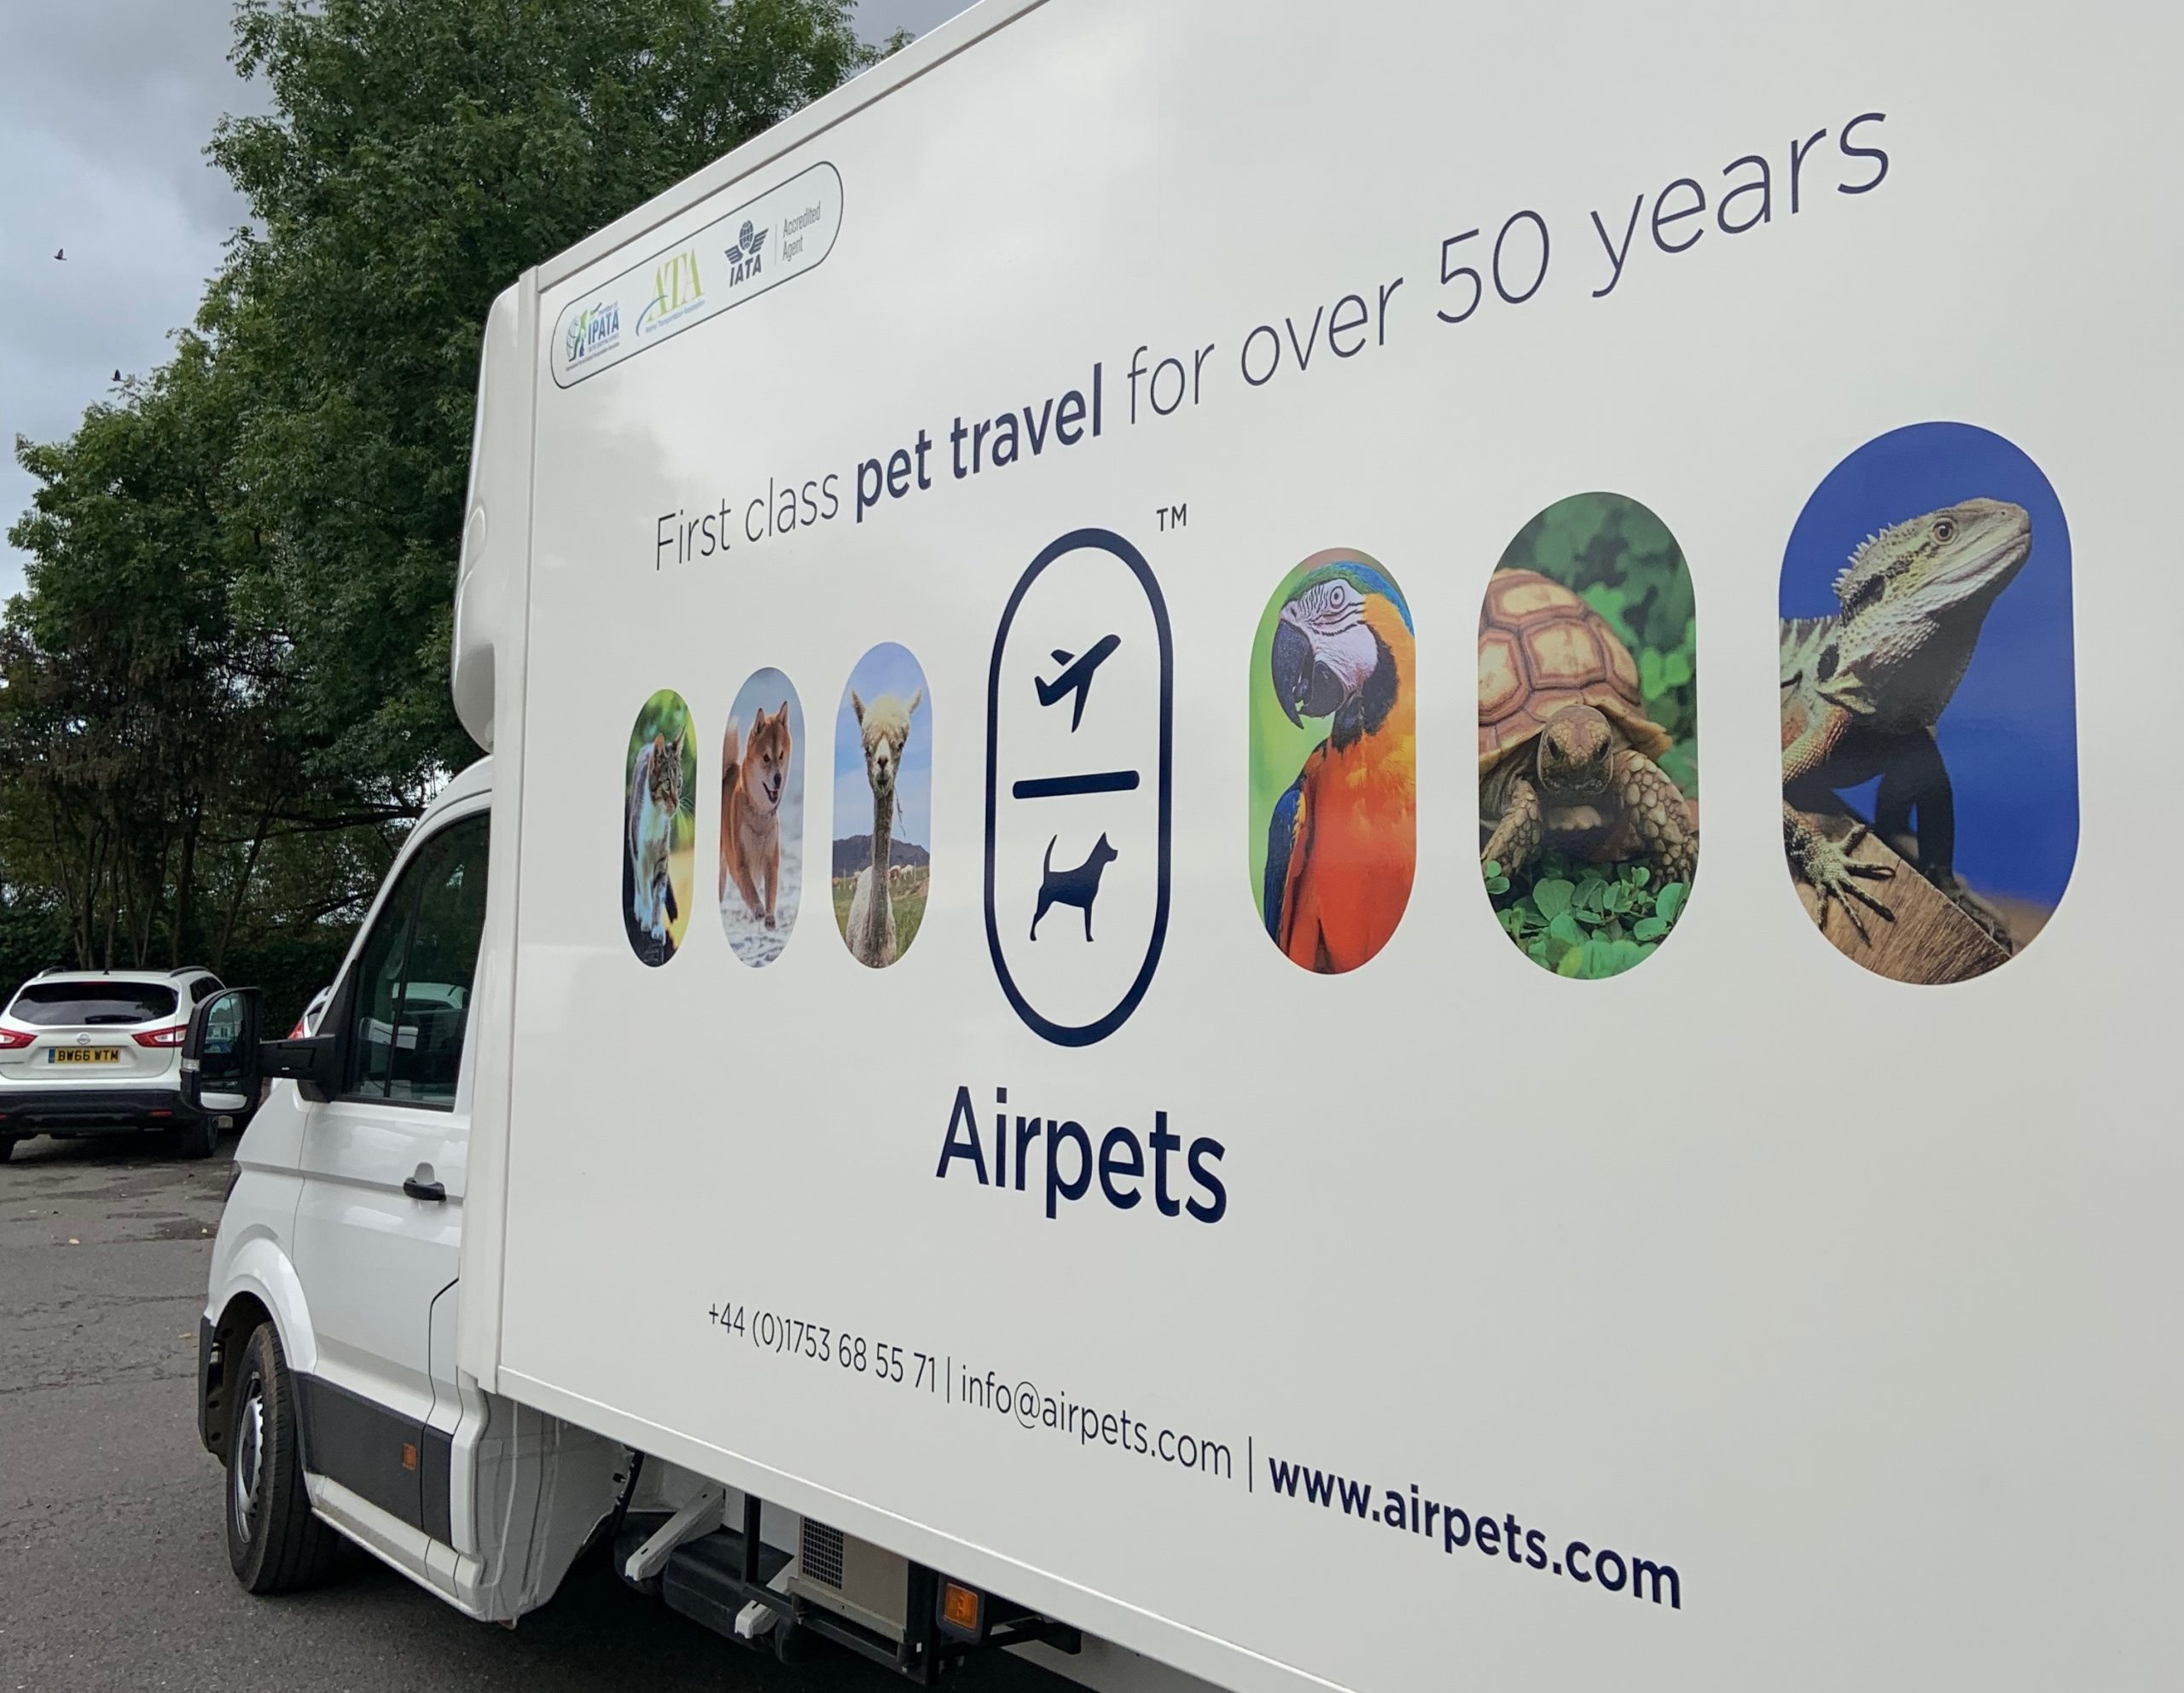 Introducing The Best Transport Fleet for Your Pets